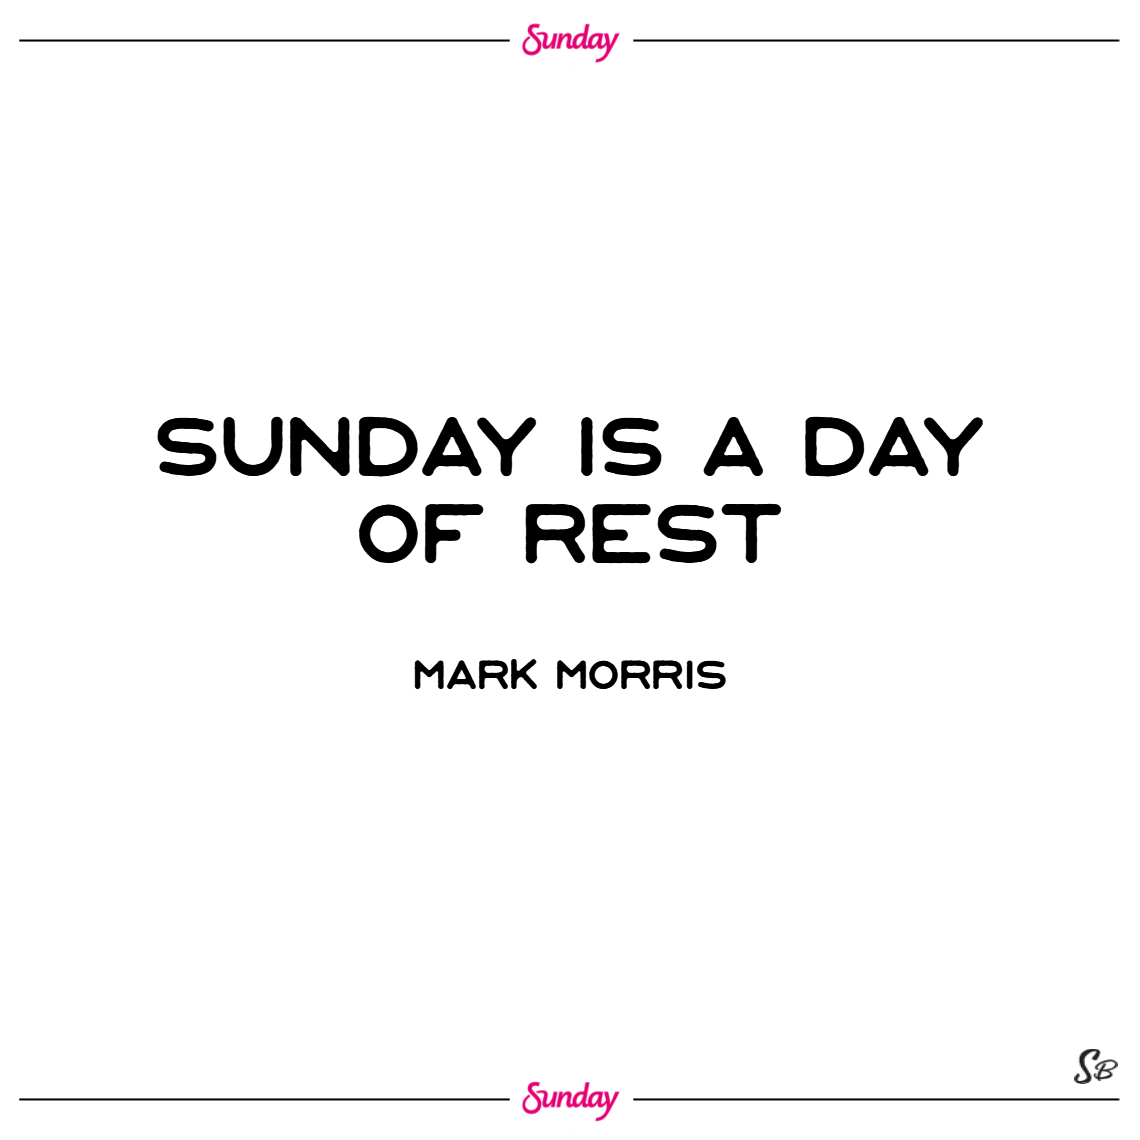 Sunday is a day of rest. – mark morris